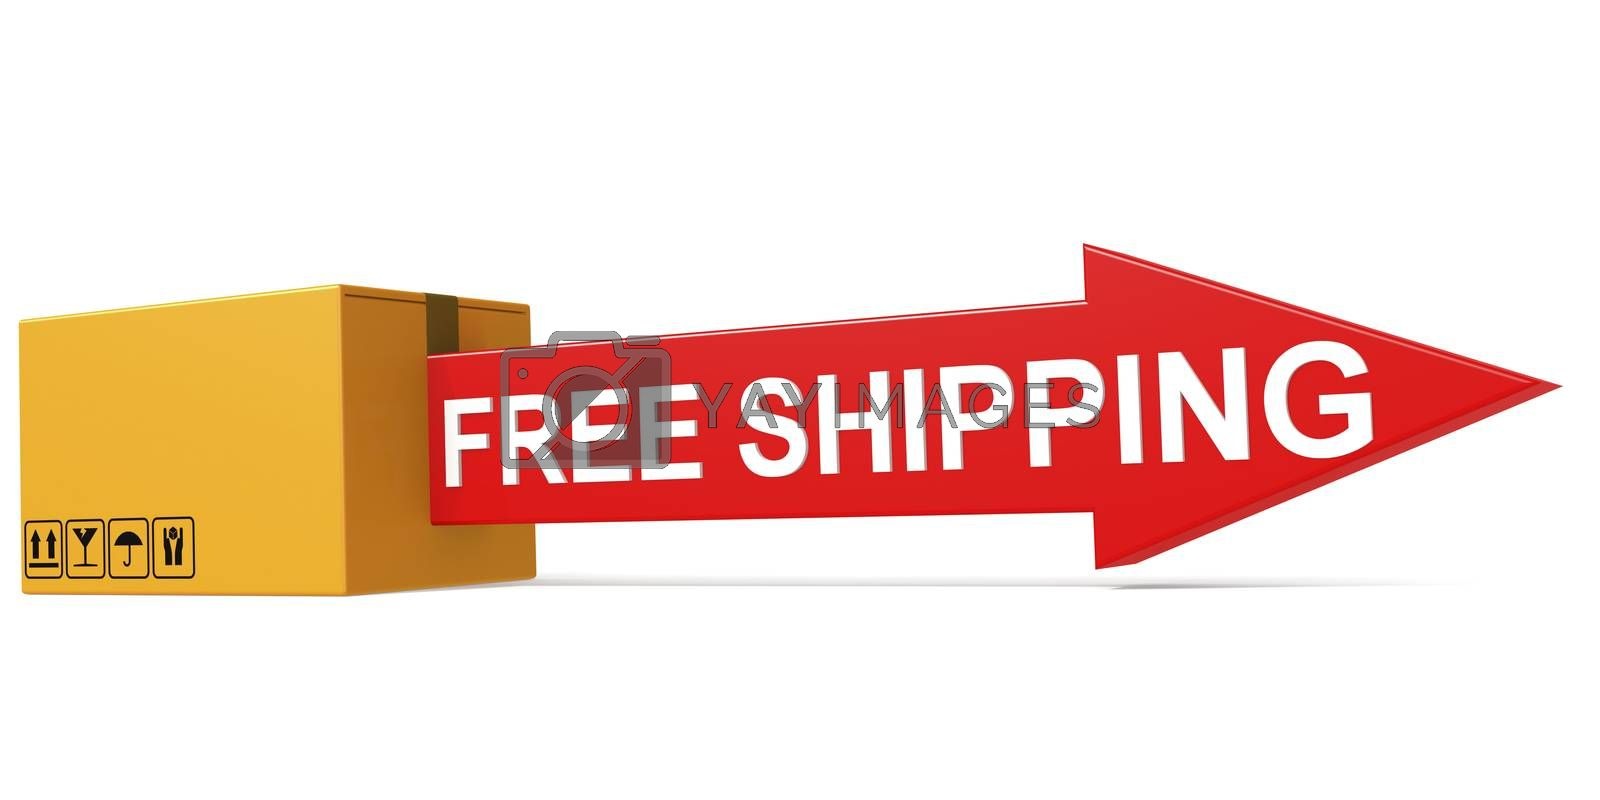 Free shipping text on the cardboard box isolated, 3D rendering